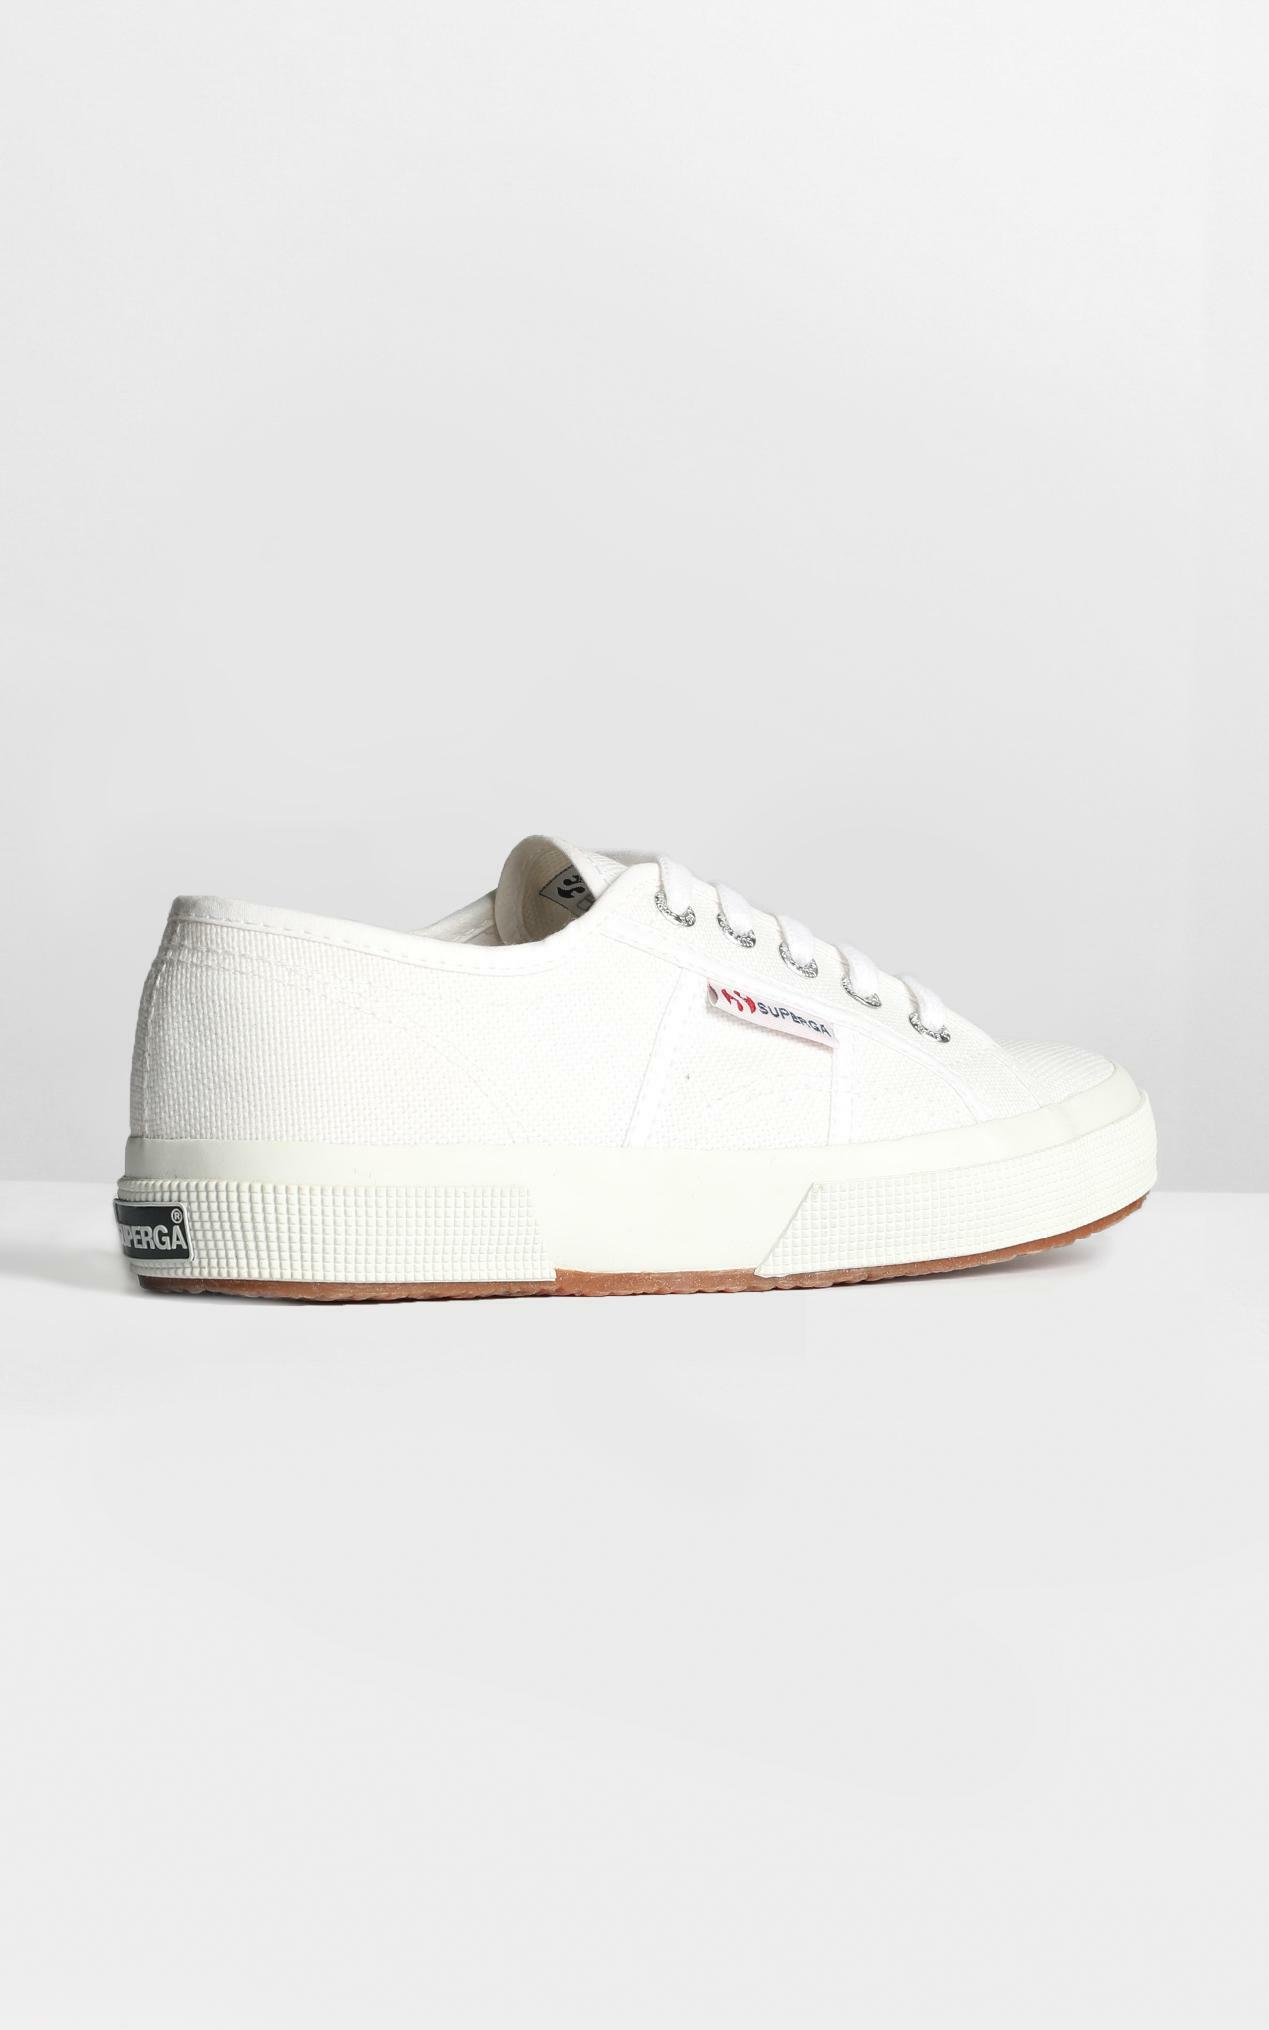 Superga - 2750 Cotu Classic Sneakers in white canvas - 5, White, hi-res image number null